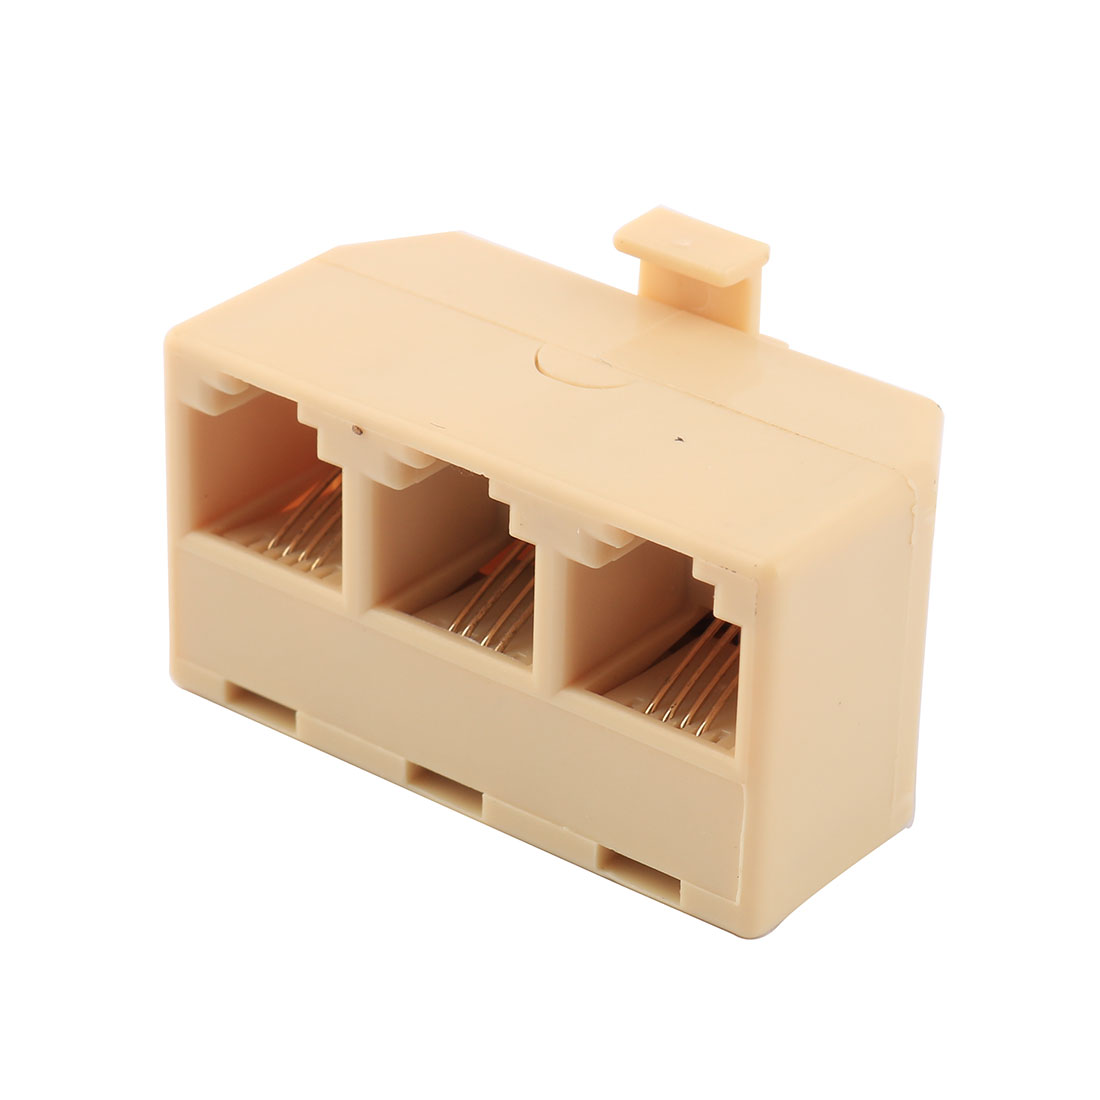 RJ11 6P4C Keystone 1 Male to 3 Female Telephone Wire Cable Connector Splitter Beige